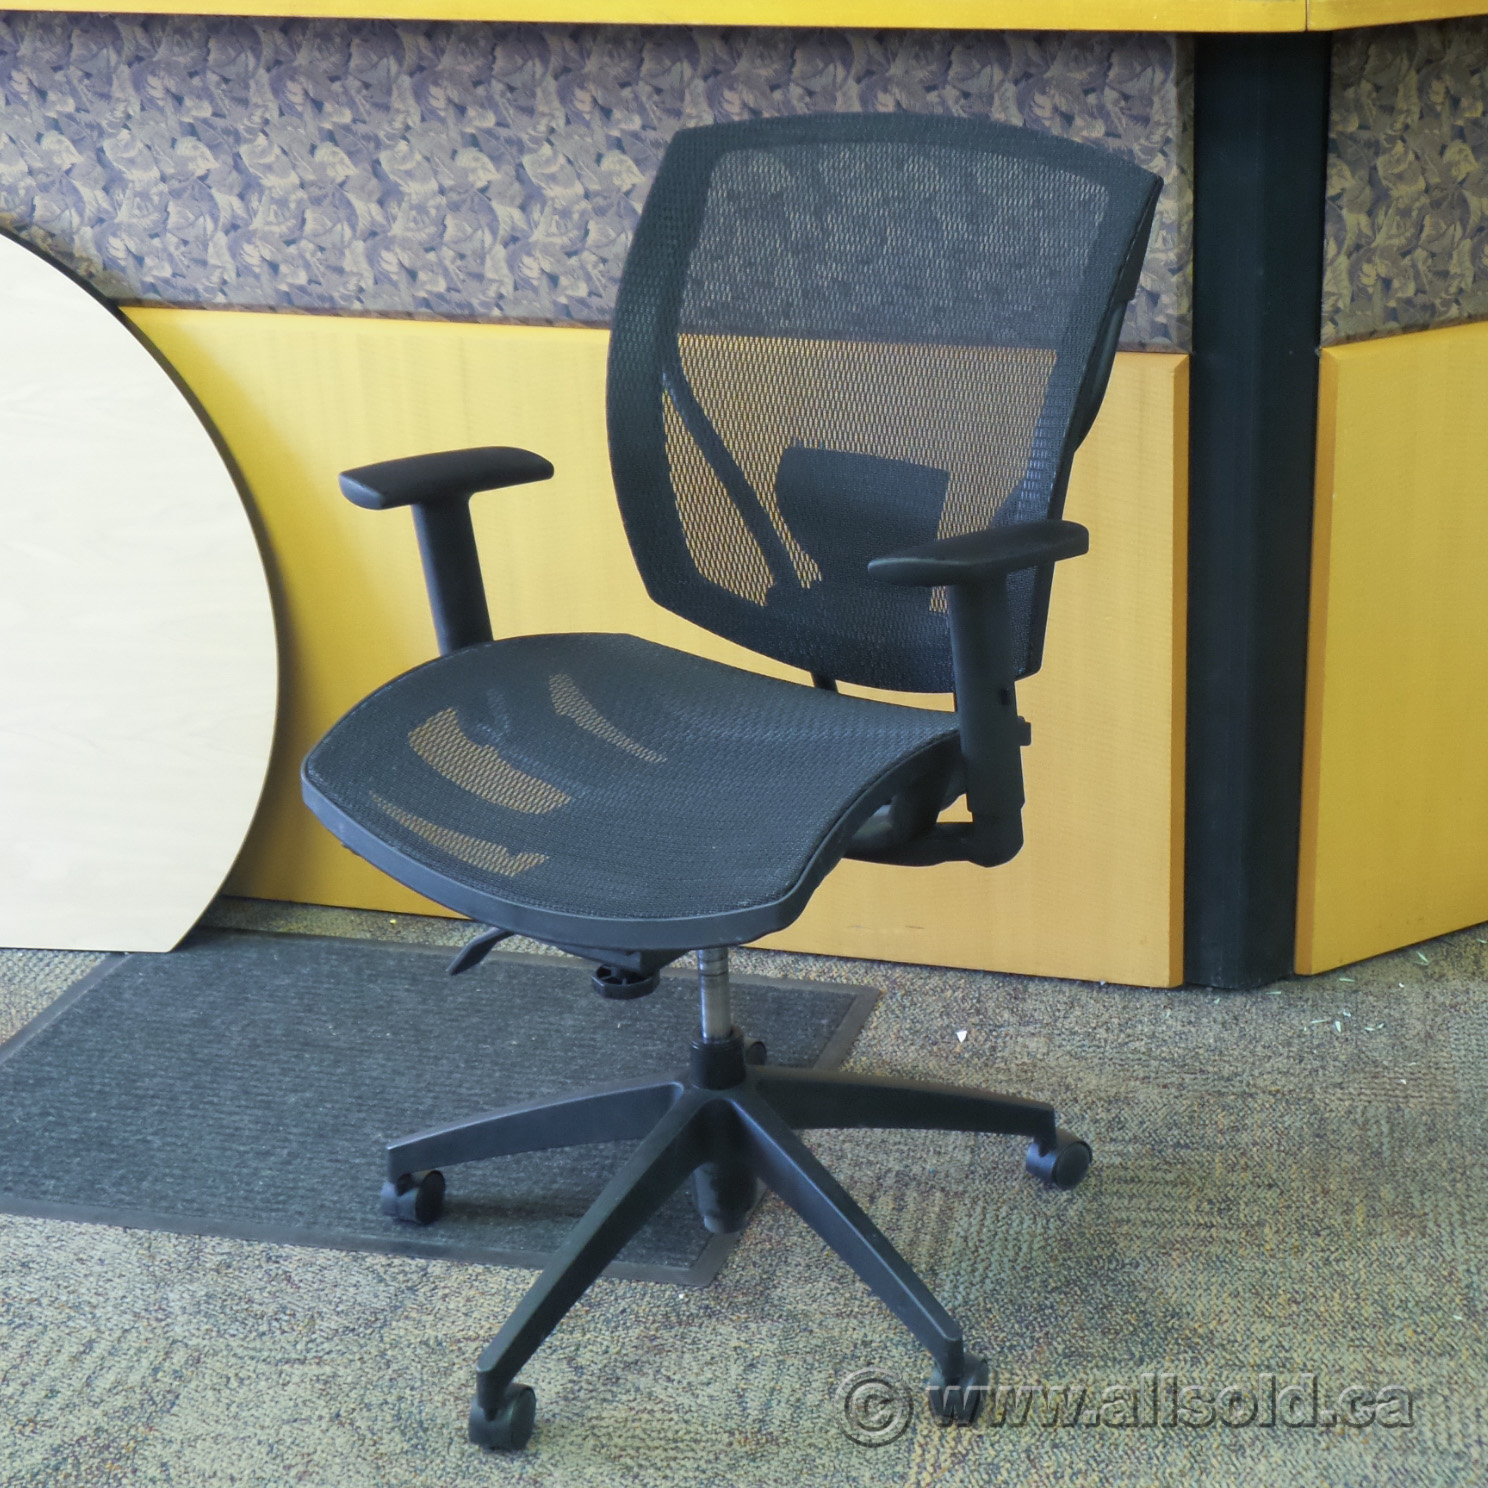 Mesh Ergonomic Office Chair Otg Ibex Black All Mesh Ergonomic Adjustable Office Task